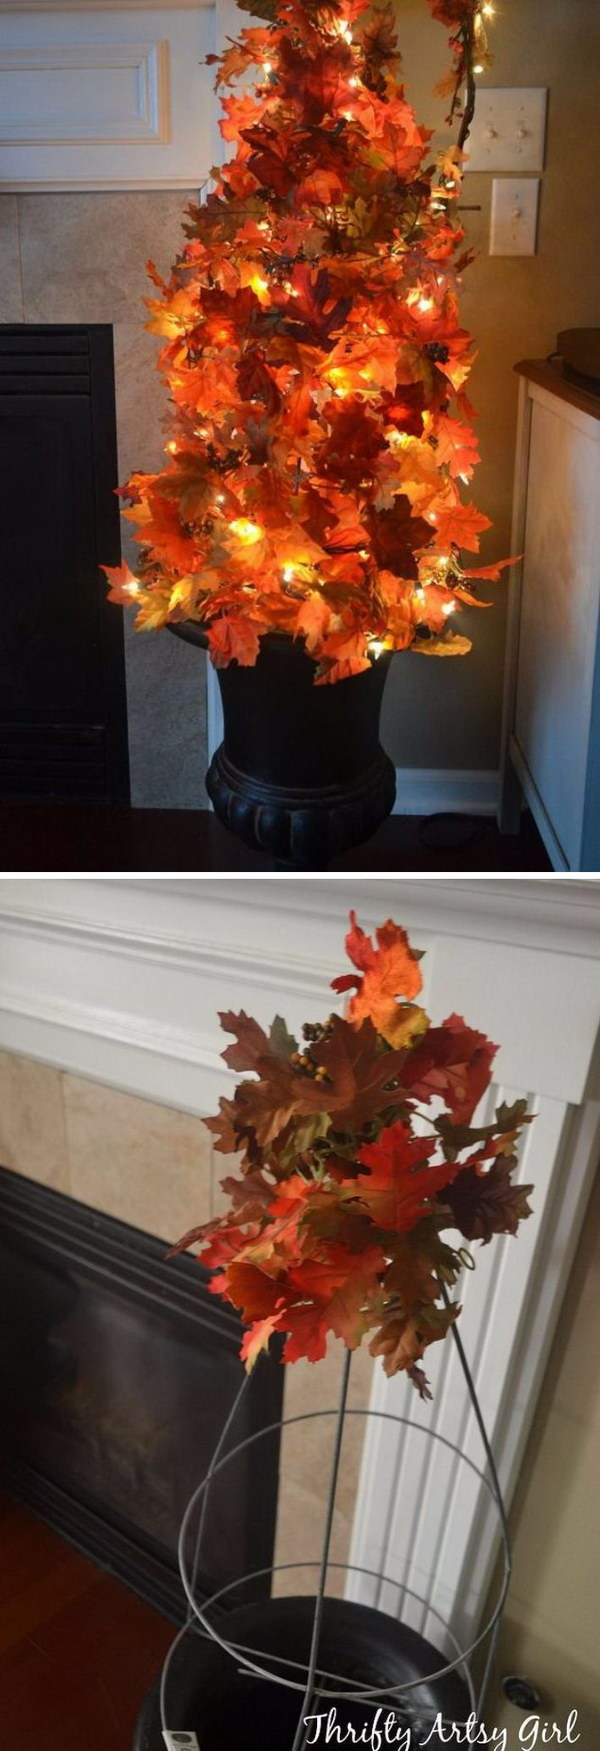 35 Easy Thanksgiving Decorations - Hative